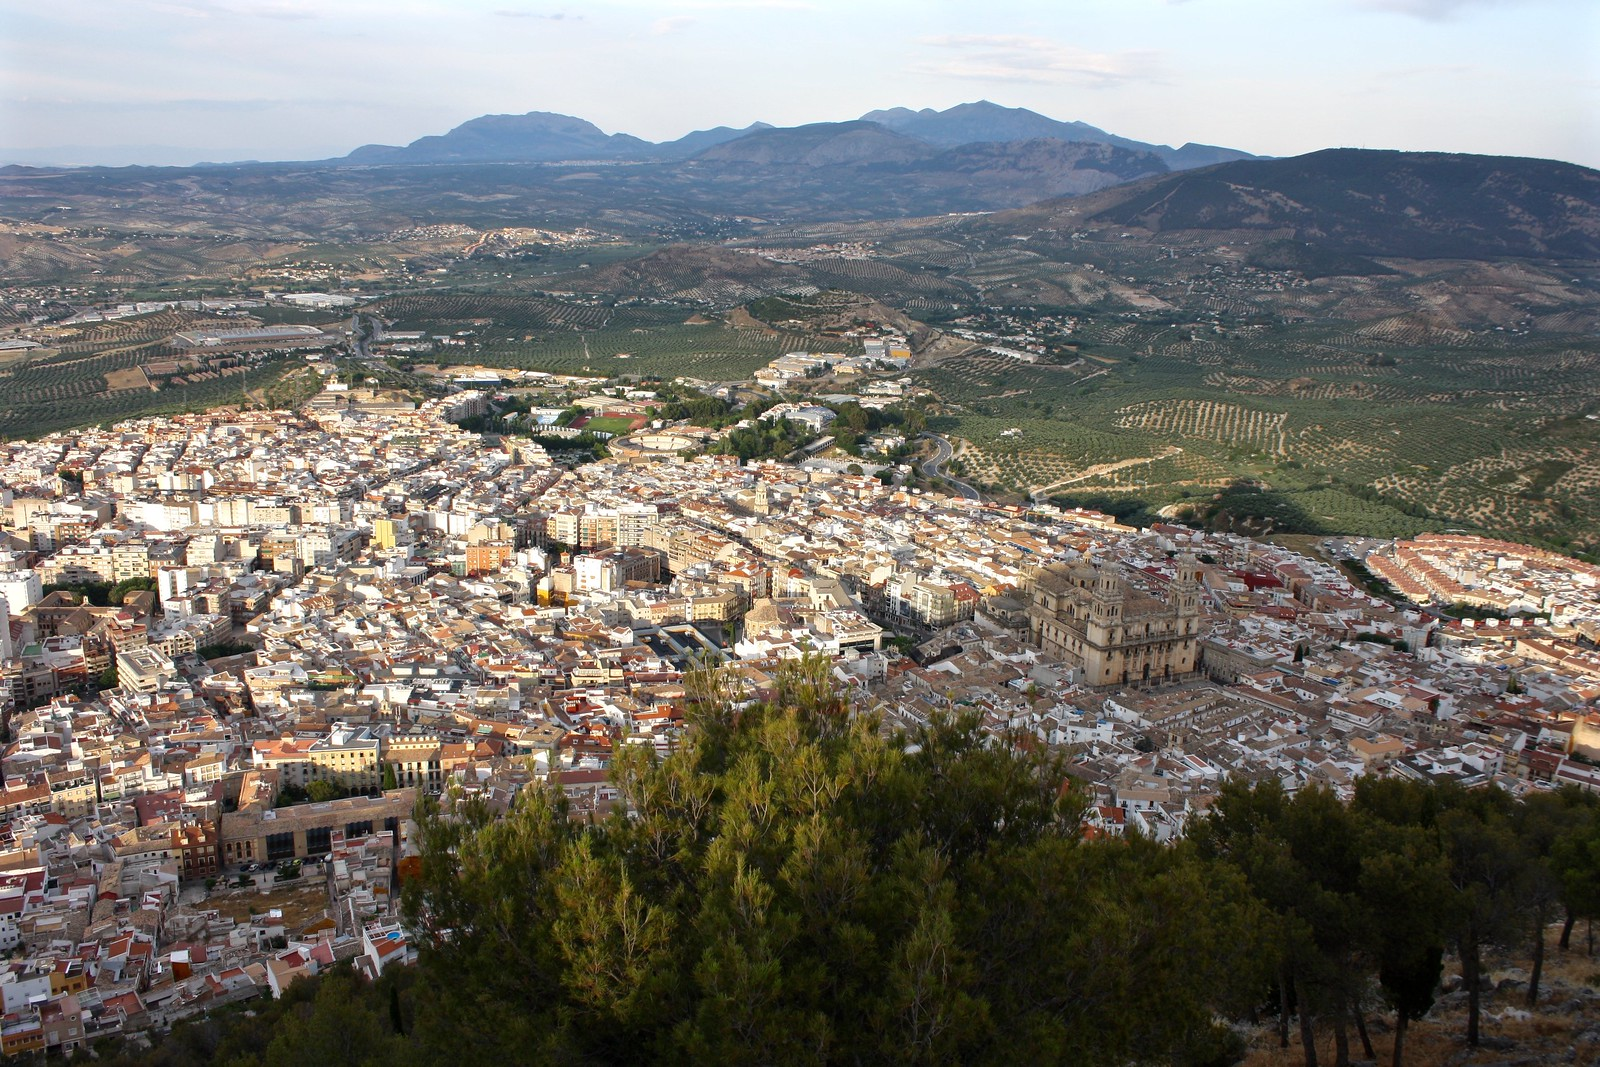 Panoramic view of Jaén, Spain, at sunset